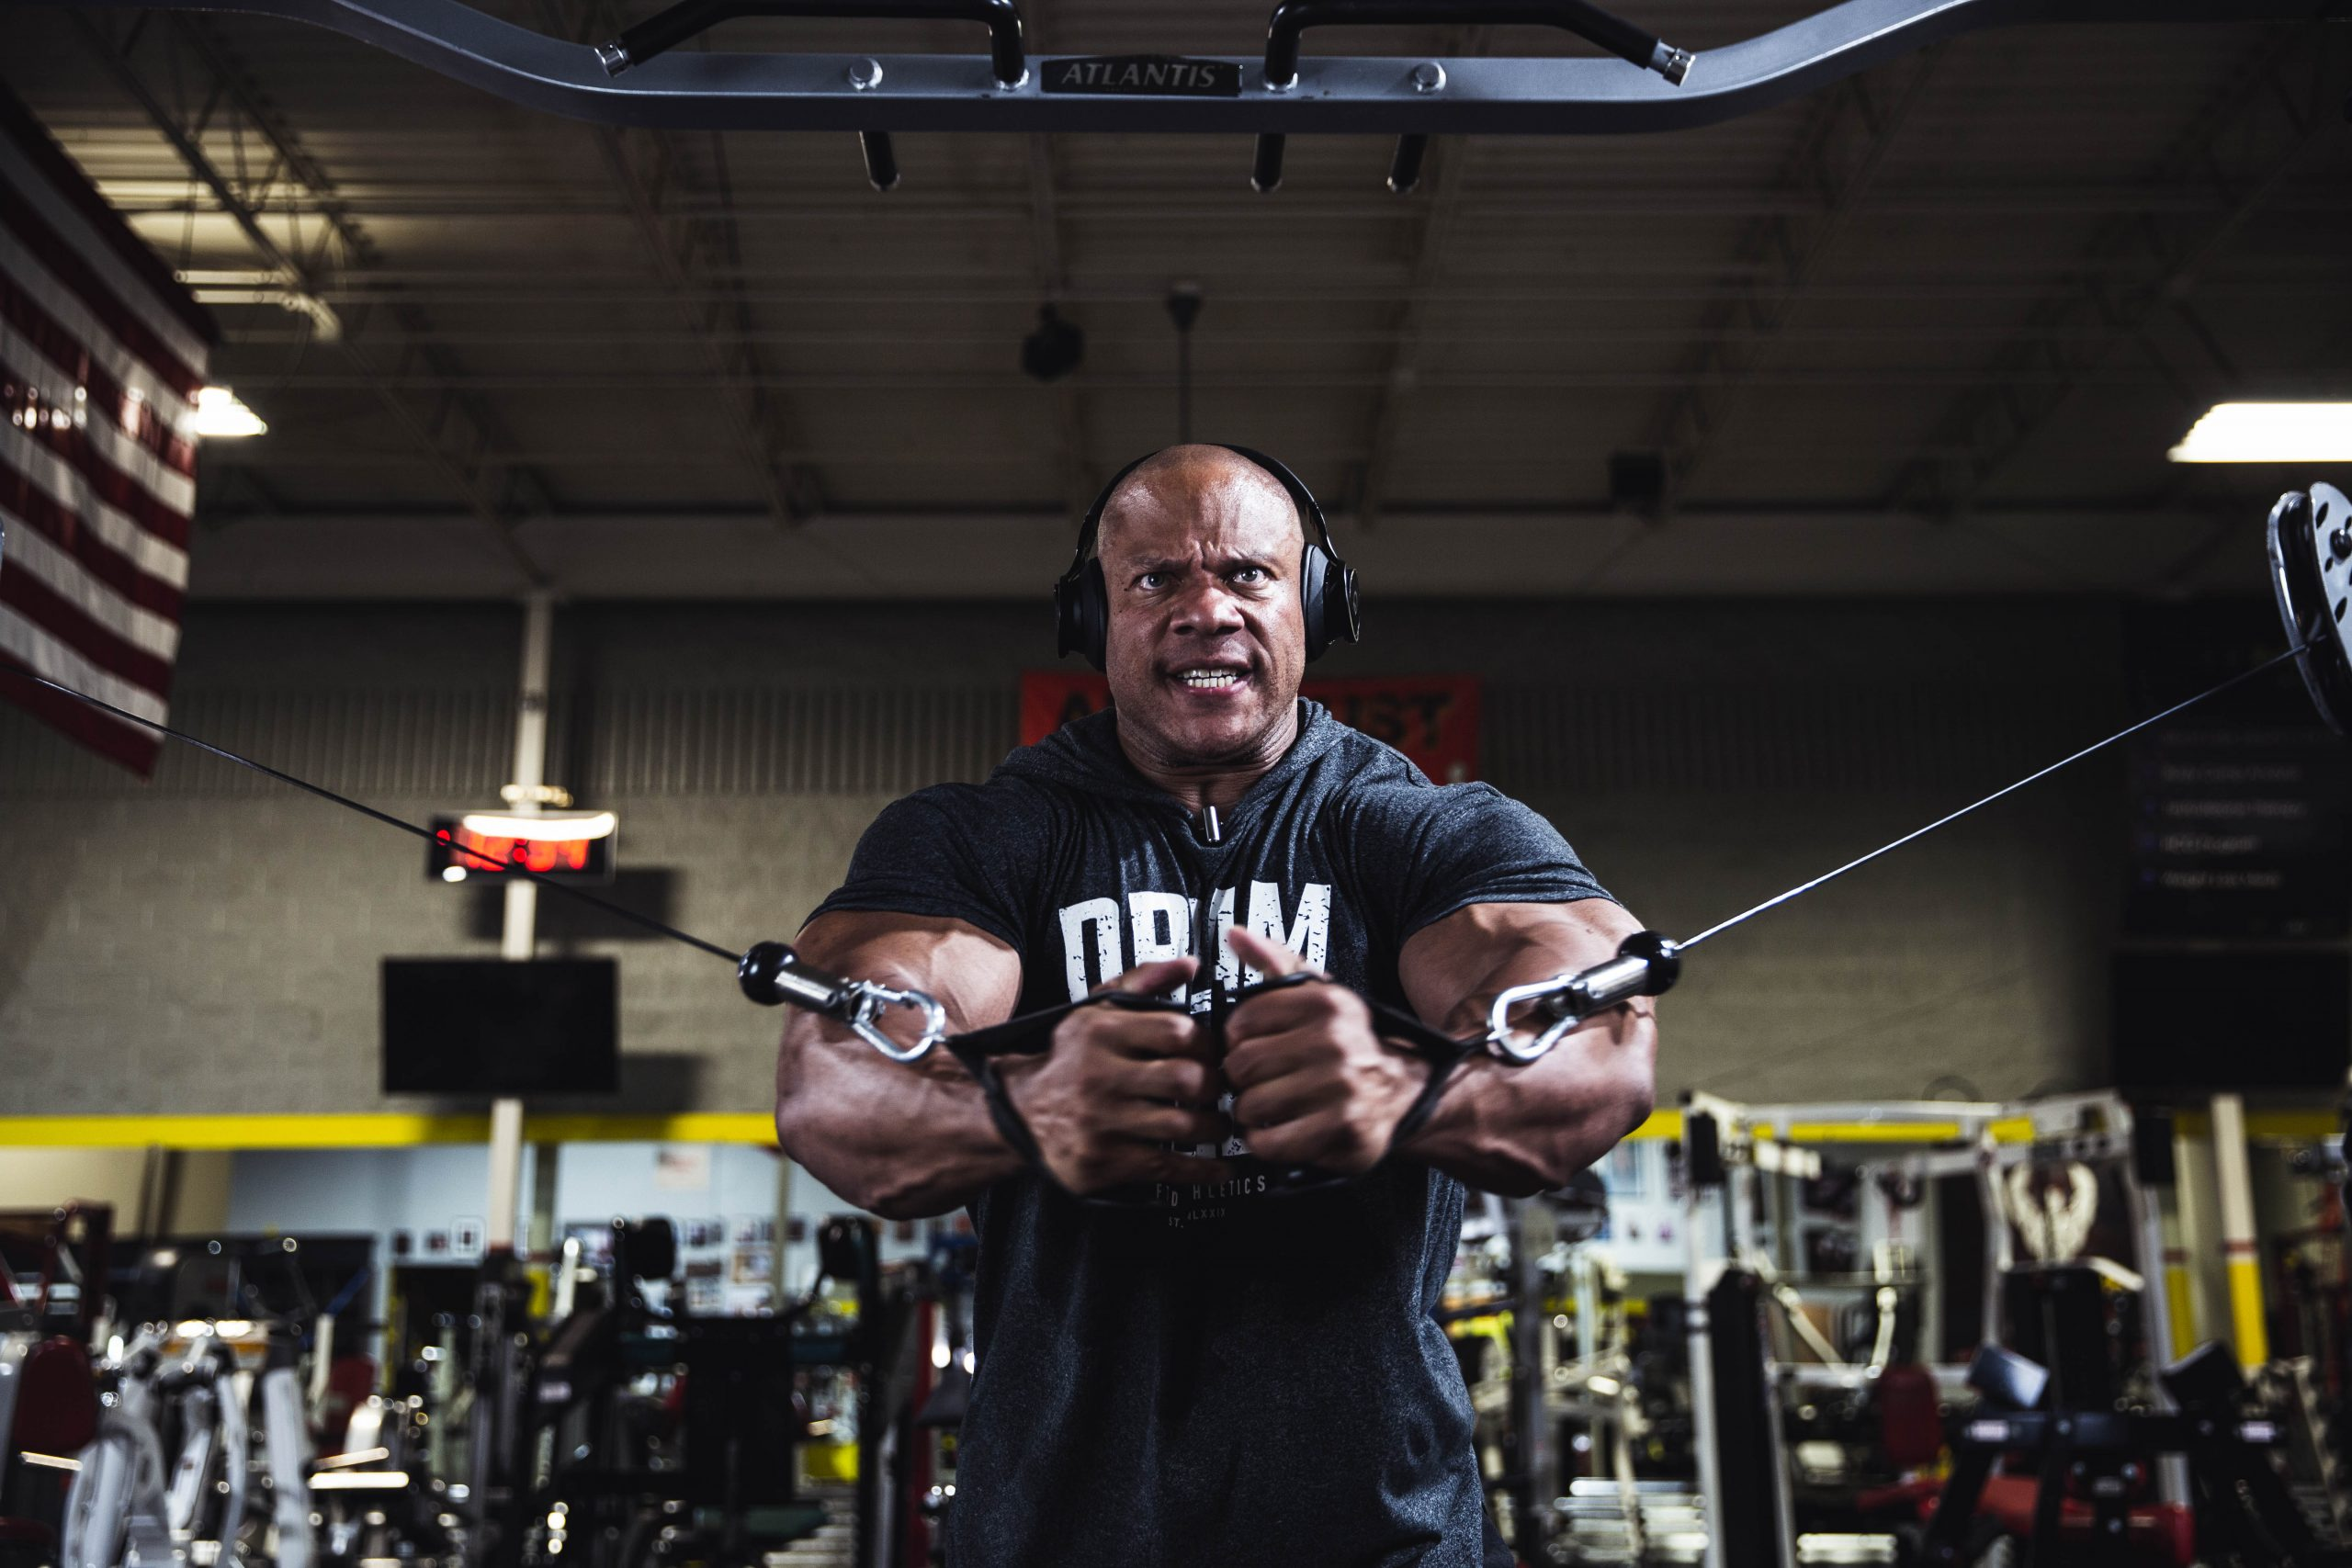 Documentary on Phil Heath's Quest For 8th Mr. Olympia Title In Development